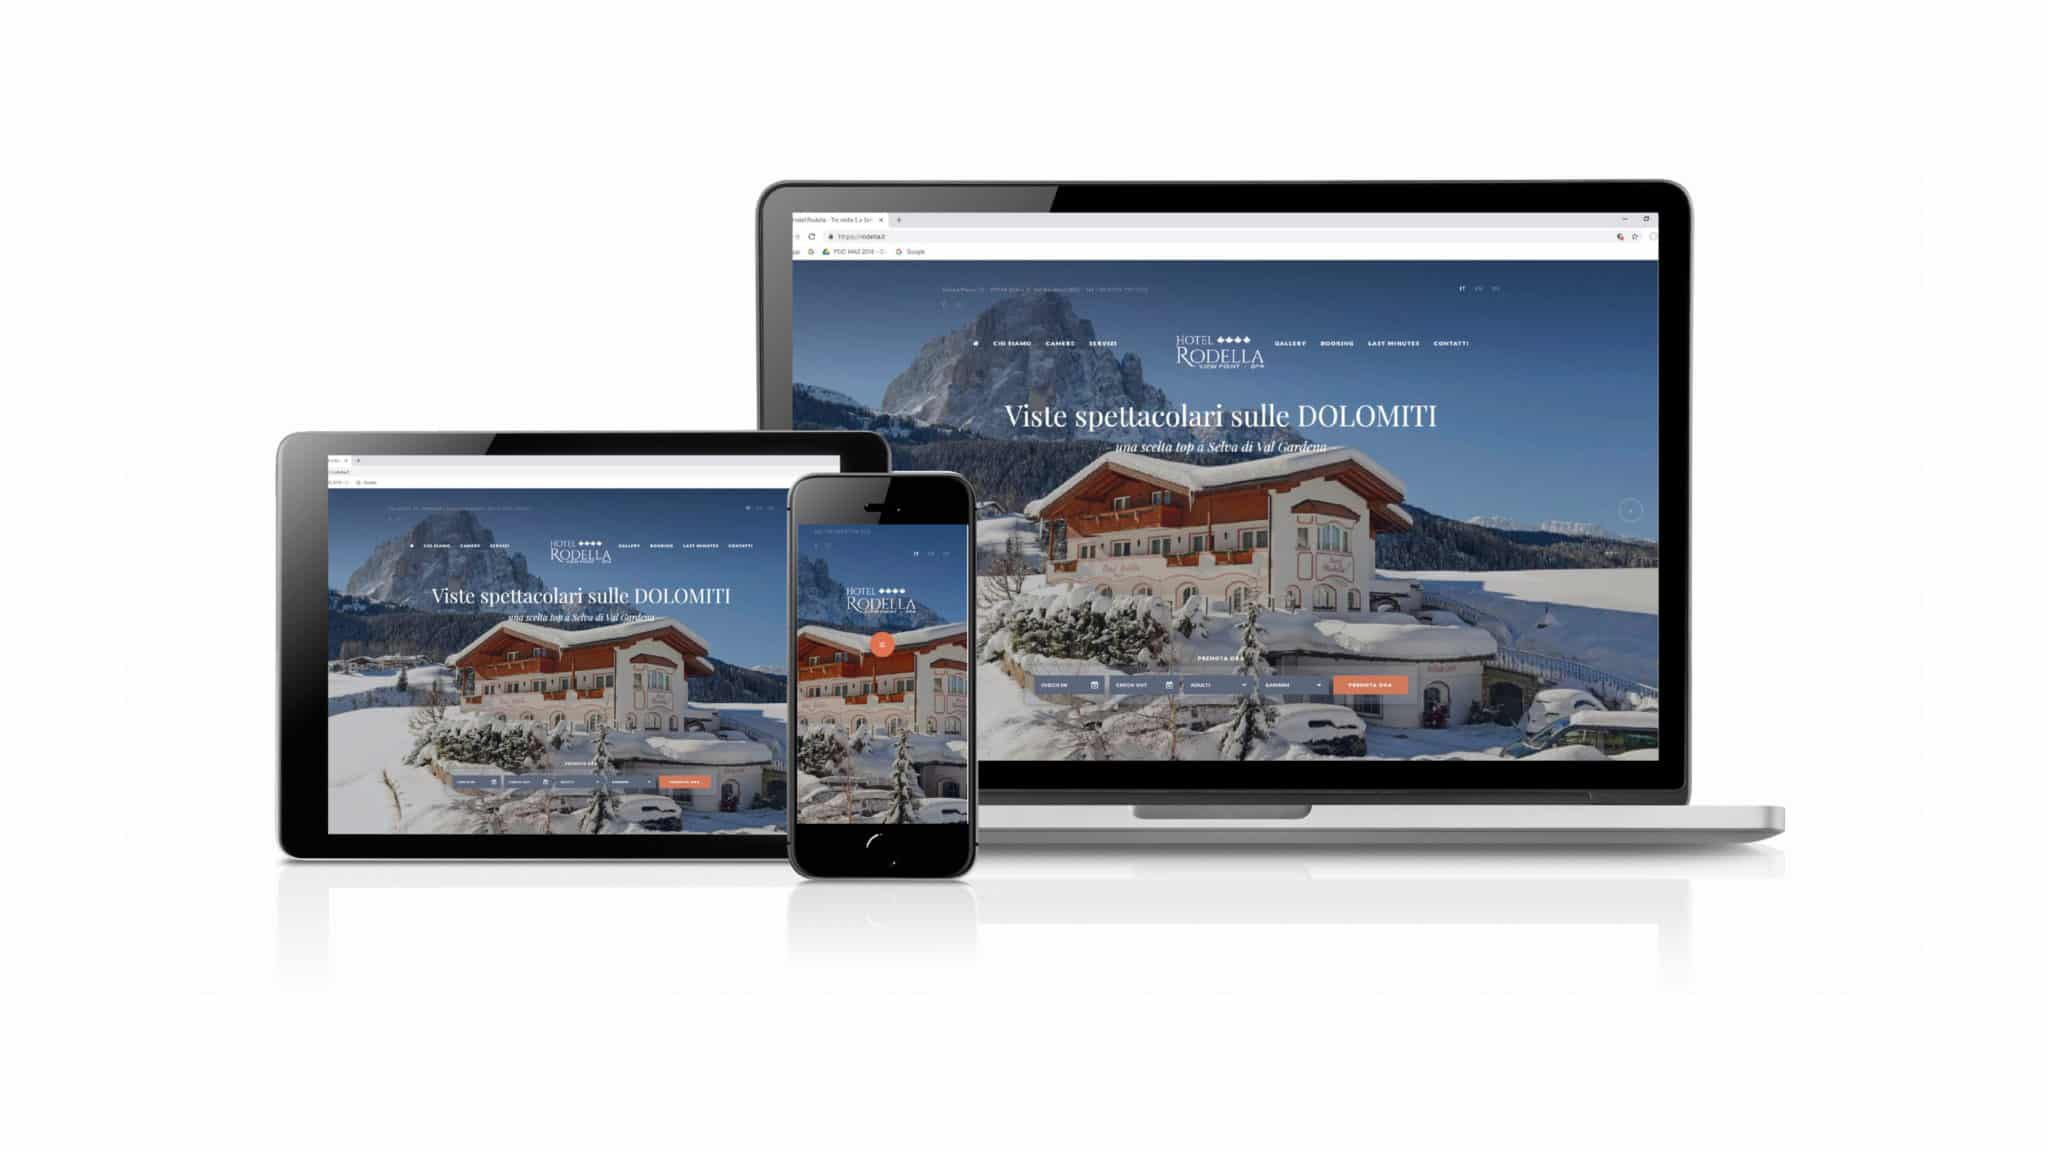 Hotel Rodella - website